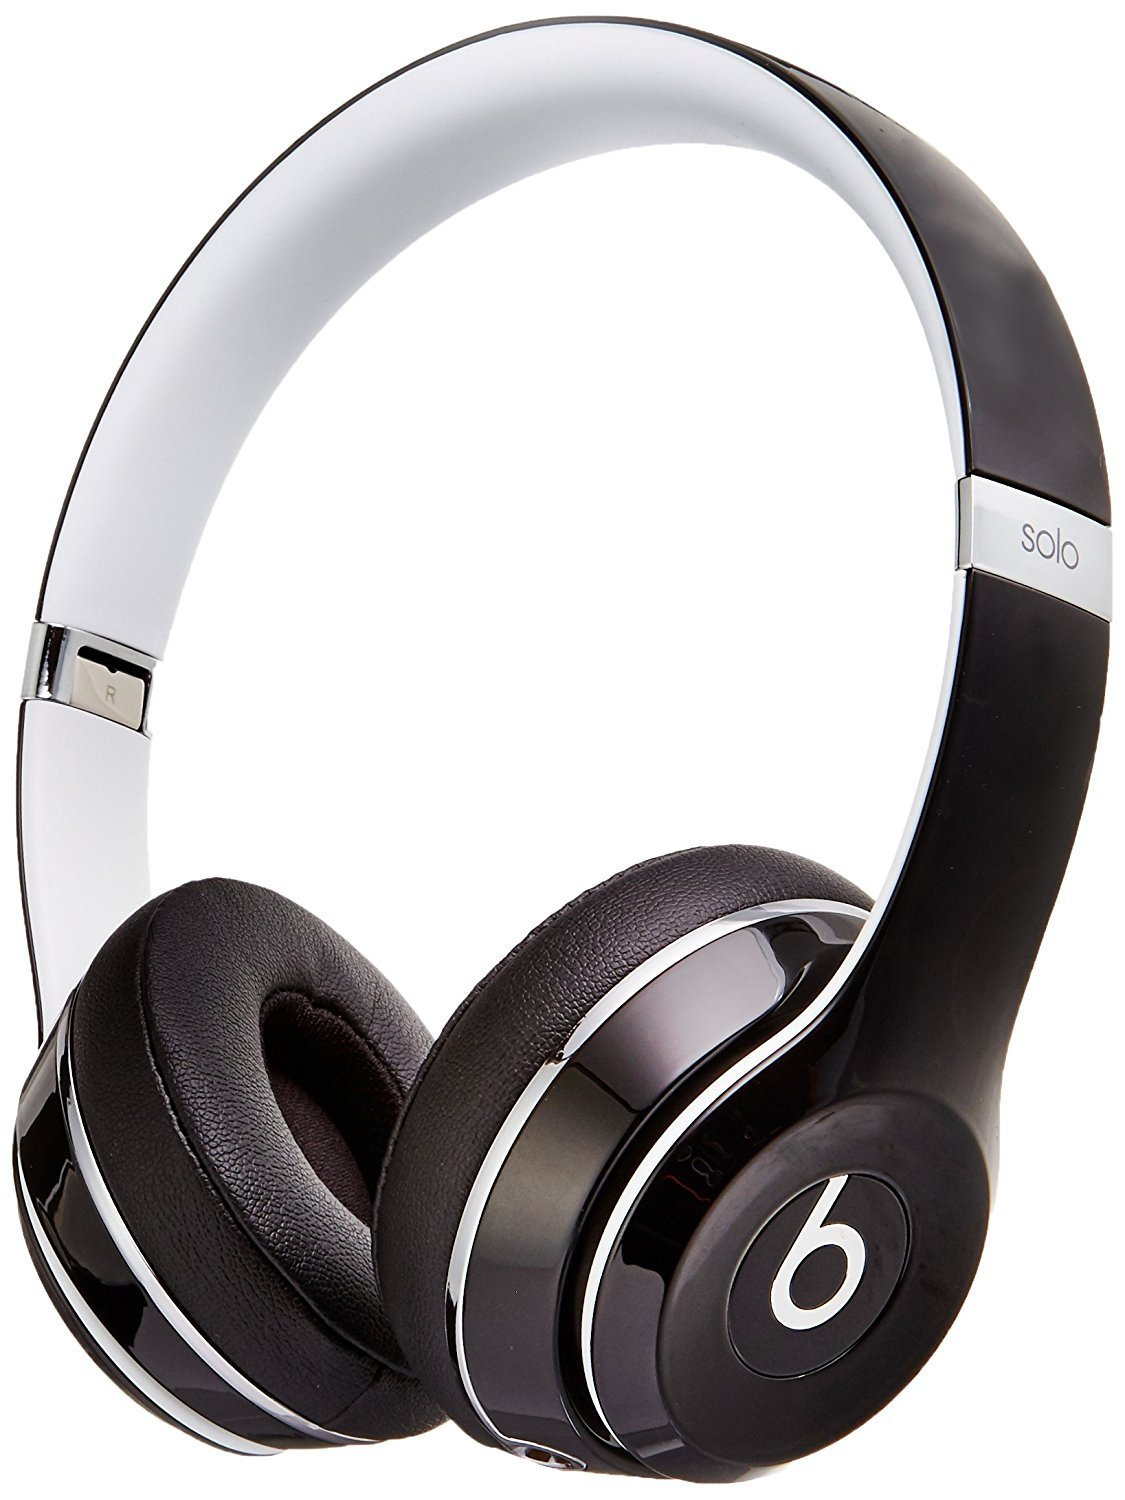 Beats Solo 2 WIRED On-Ear Headphones Luxe Edition NOT WIRELESS - Black (Certified Refurbished) by Beats